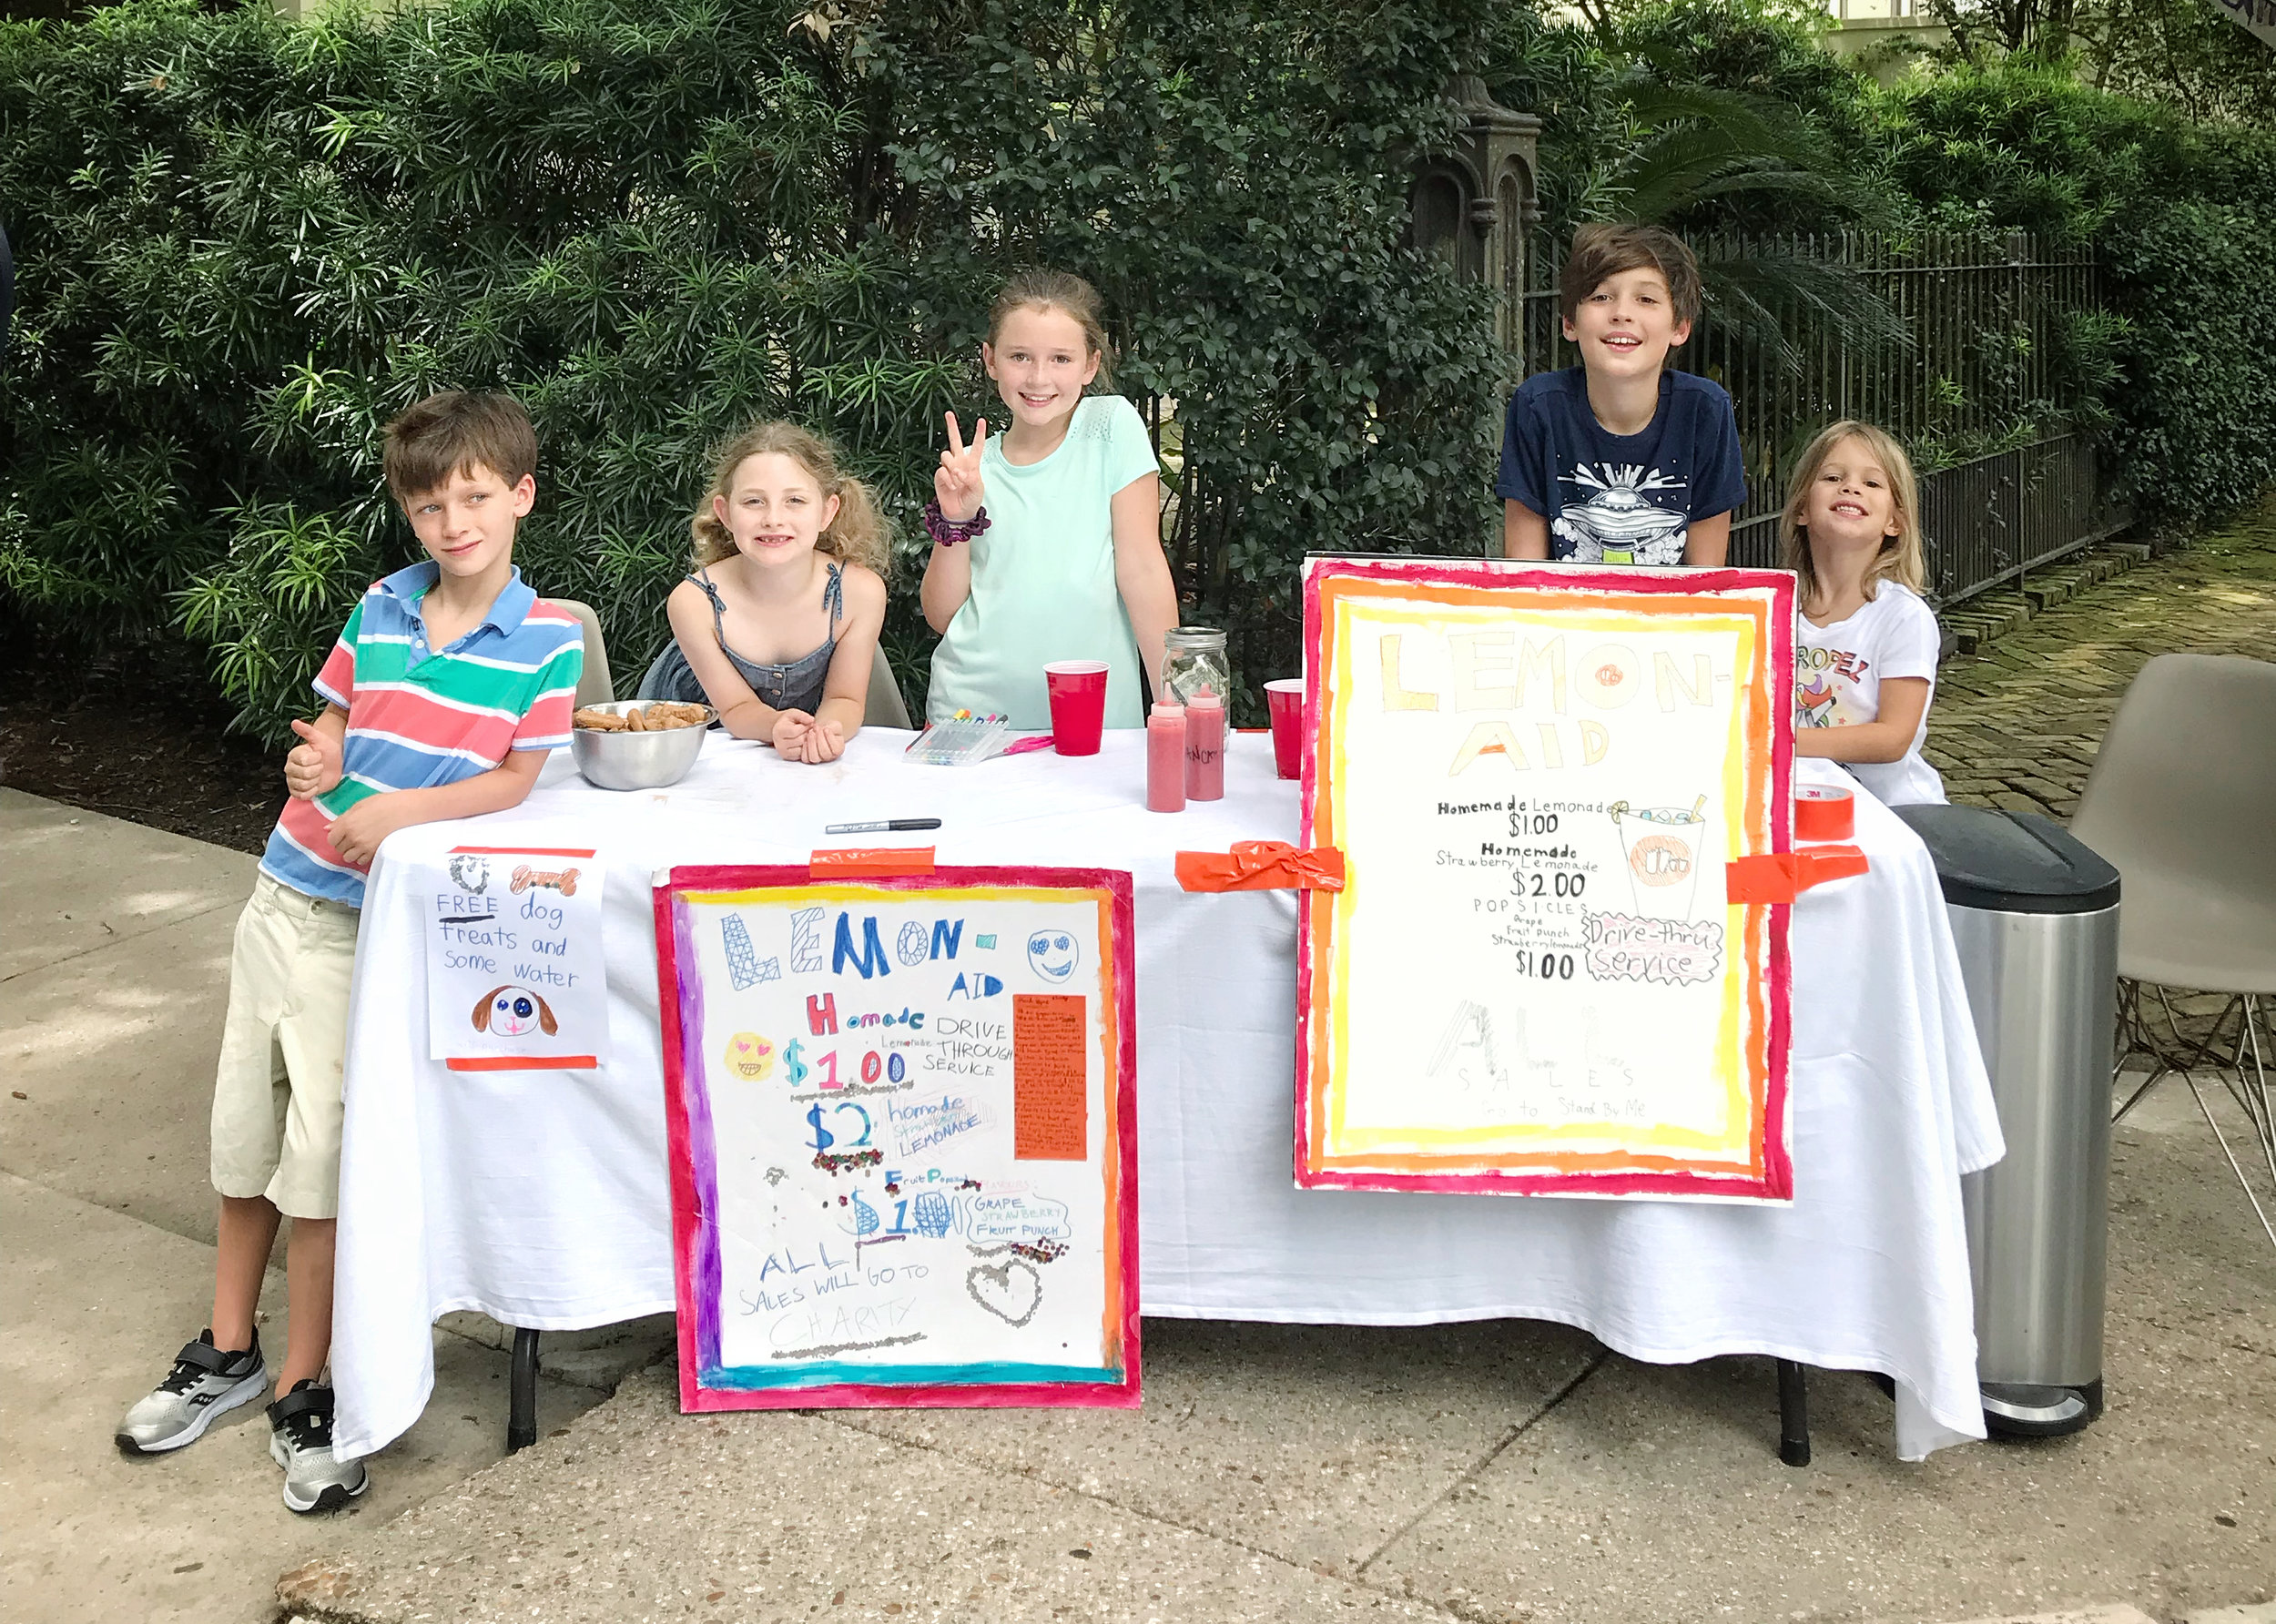 Lemonade for Stand By Me - Powers, Grace and Teddy Bride Mayor recruited a few friends and hosted a lemonade stand for Stand By Me this summer. Stand included free dog biscuits (with purchase) as well as a print out of what Stand By Me is all about.